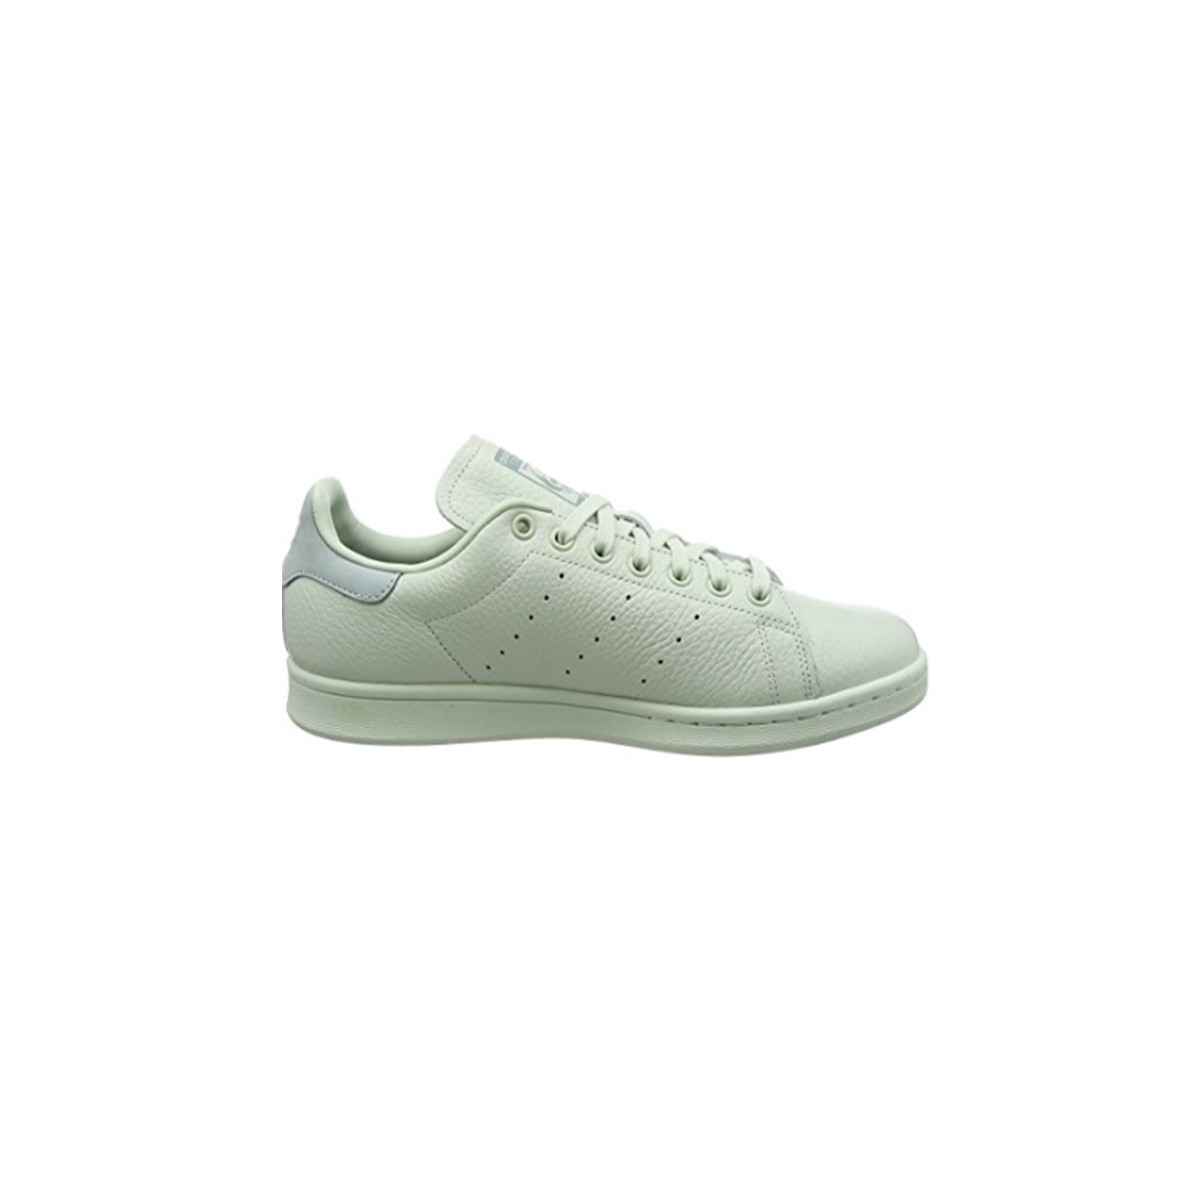 Basket Stan Smith lacets cuir Verlin